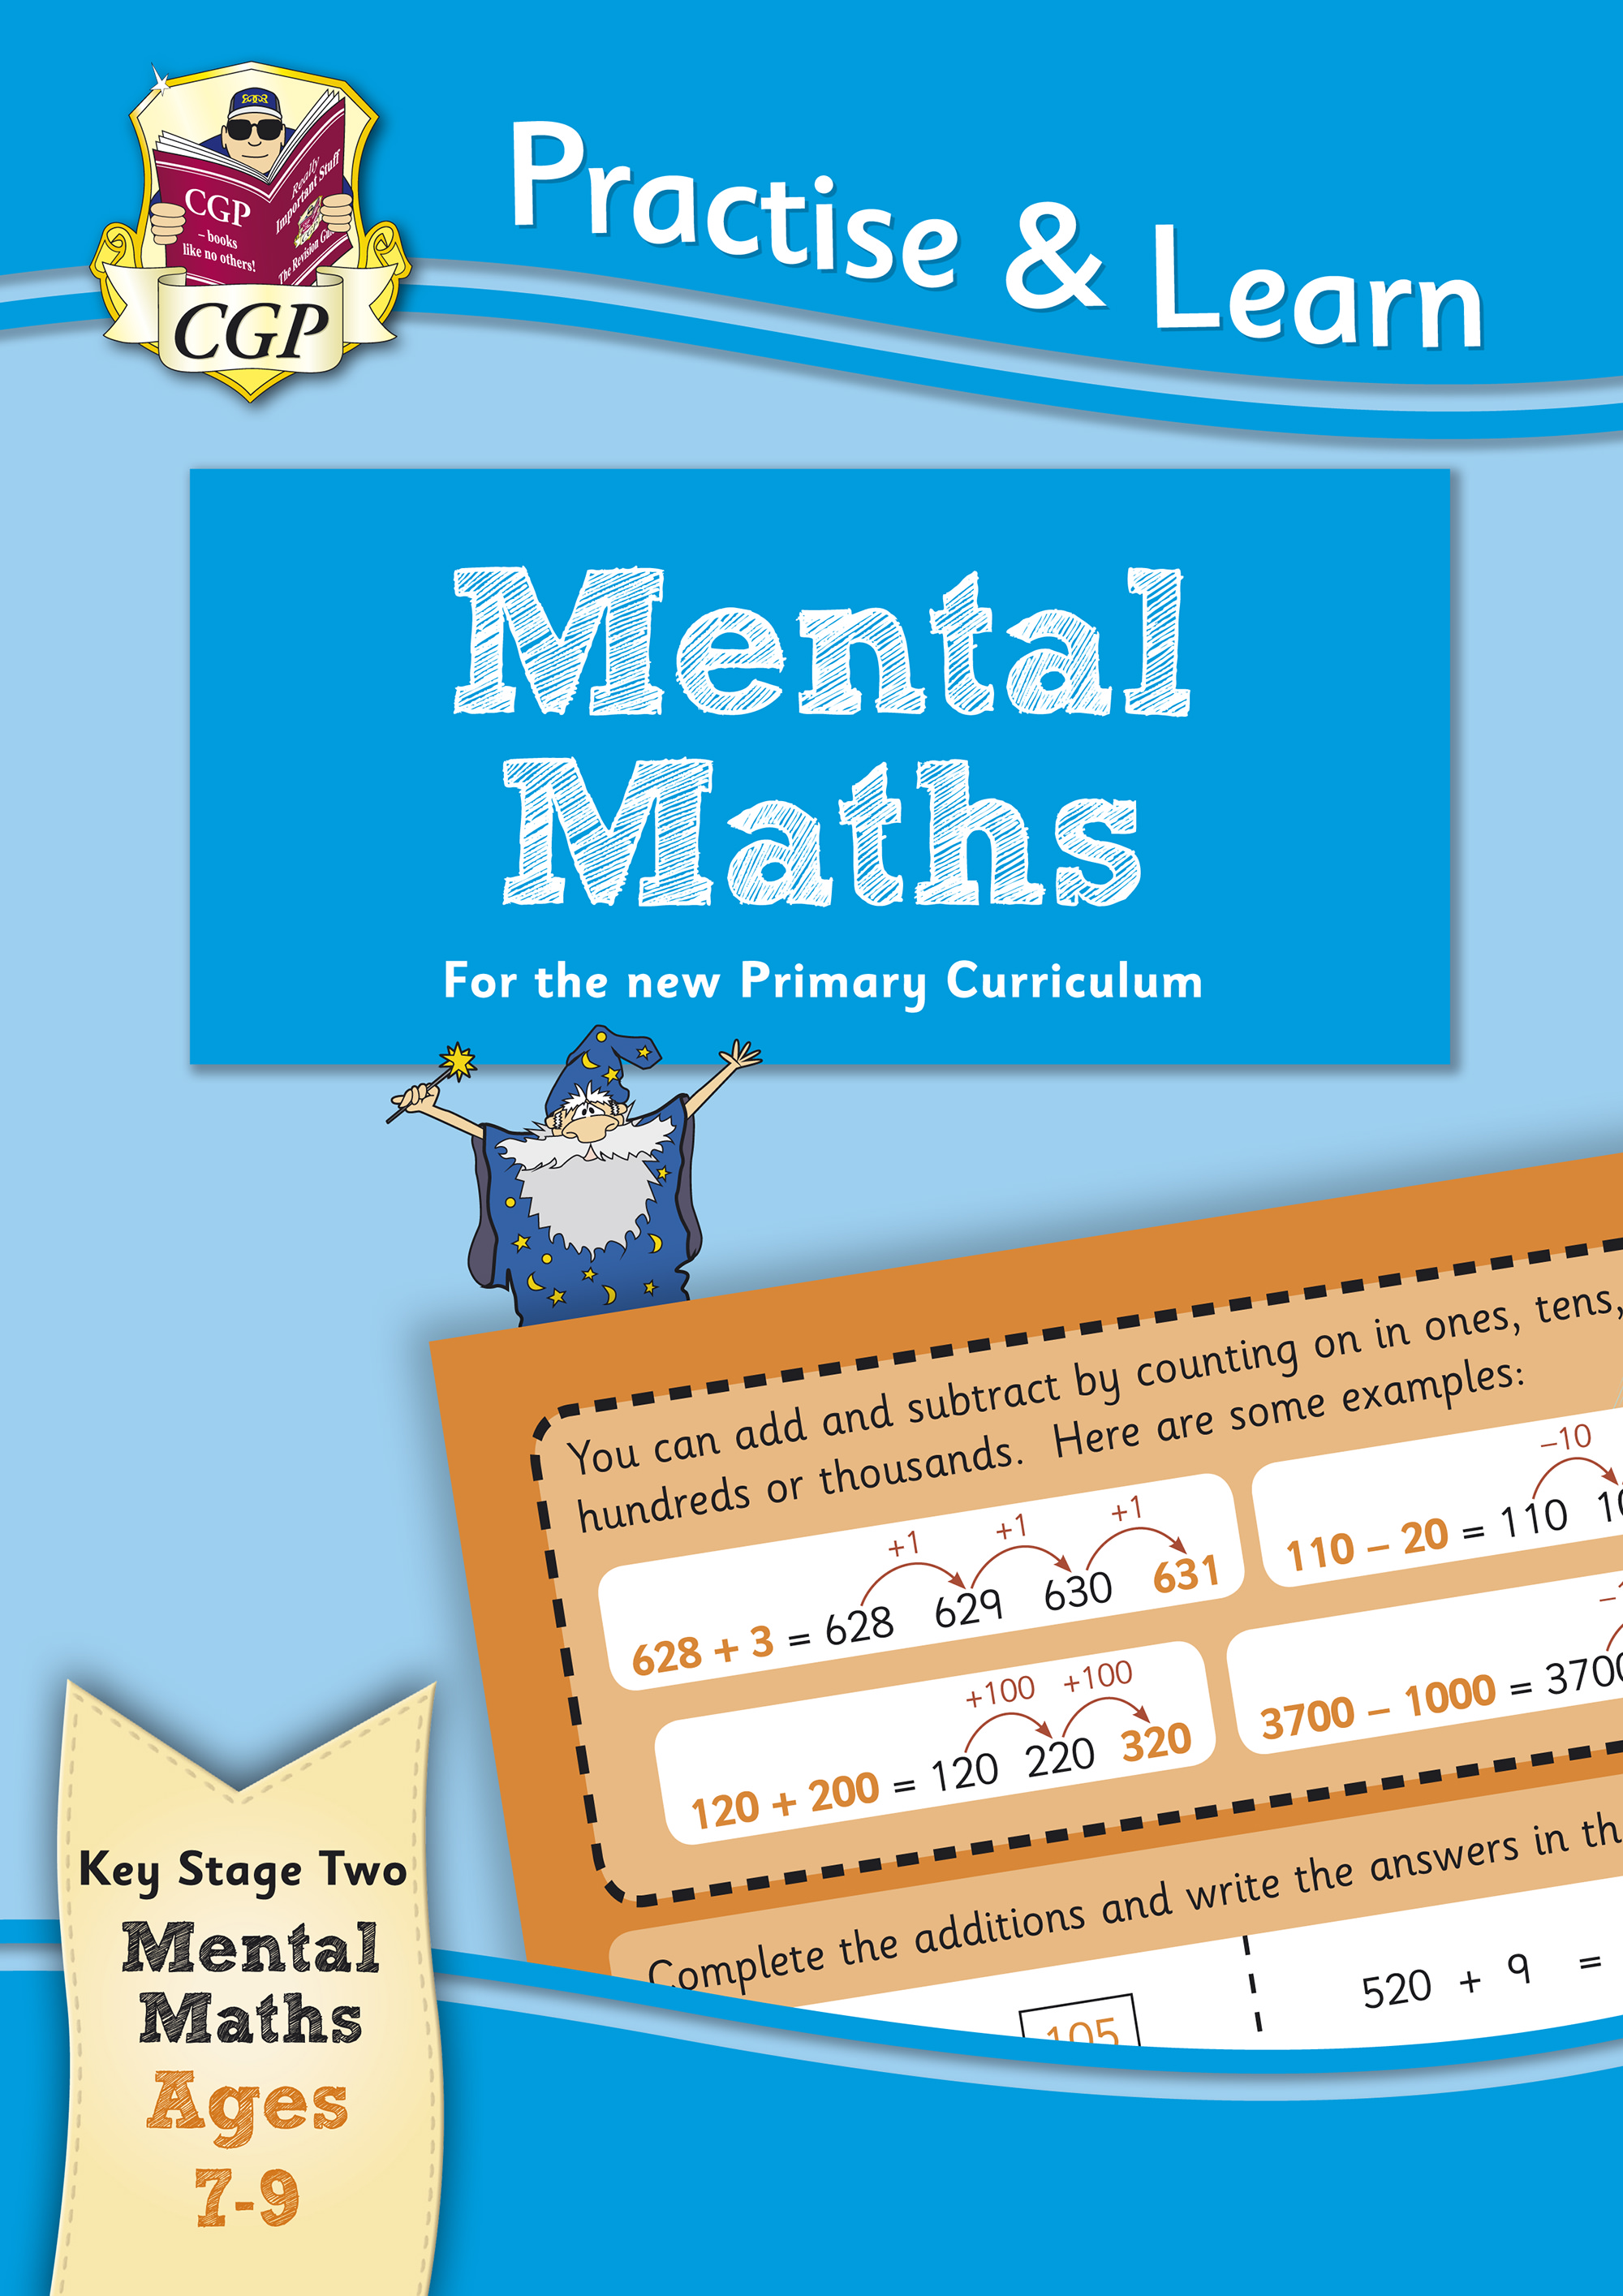 MP4MA22 - New Curriculum Practise & Learn: Mental Maths for Ages 7-9